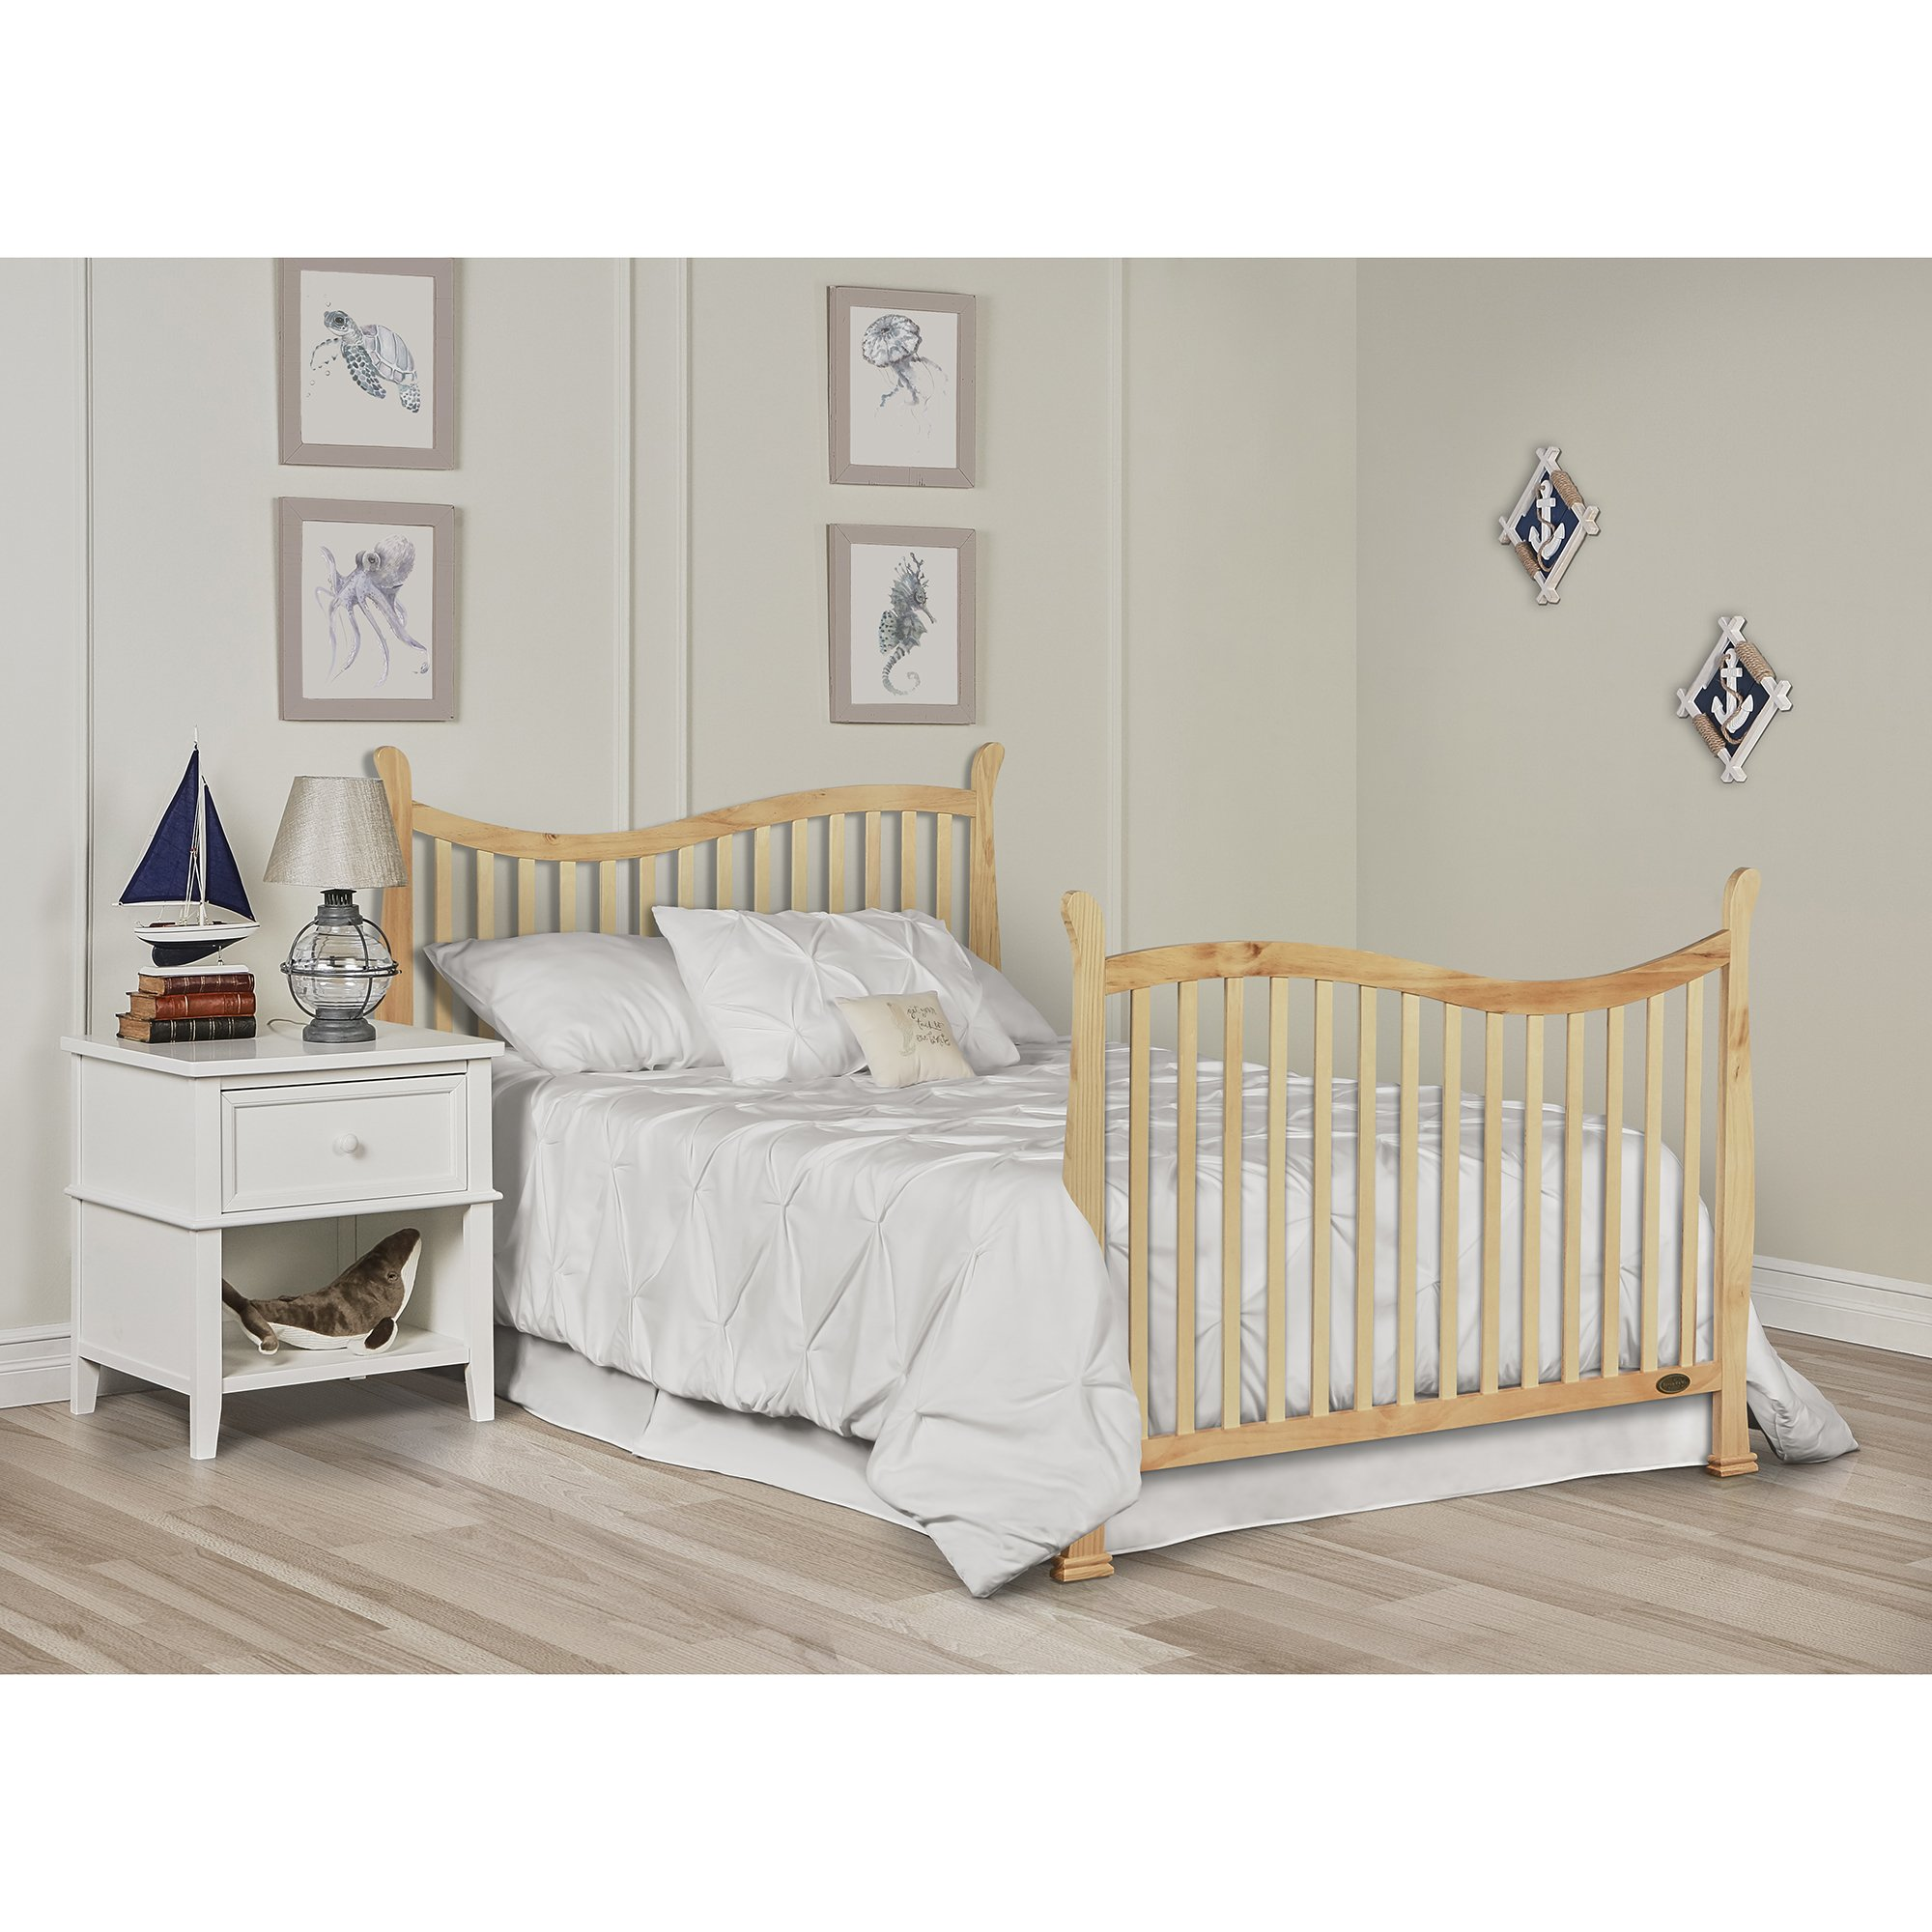 Dream On Me Violet 7 in 1 Convertible Life Style Crib, Natural by Dream On Me (Image #5)